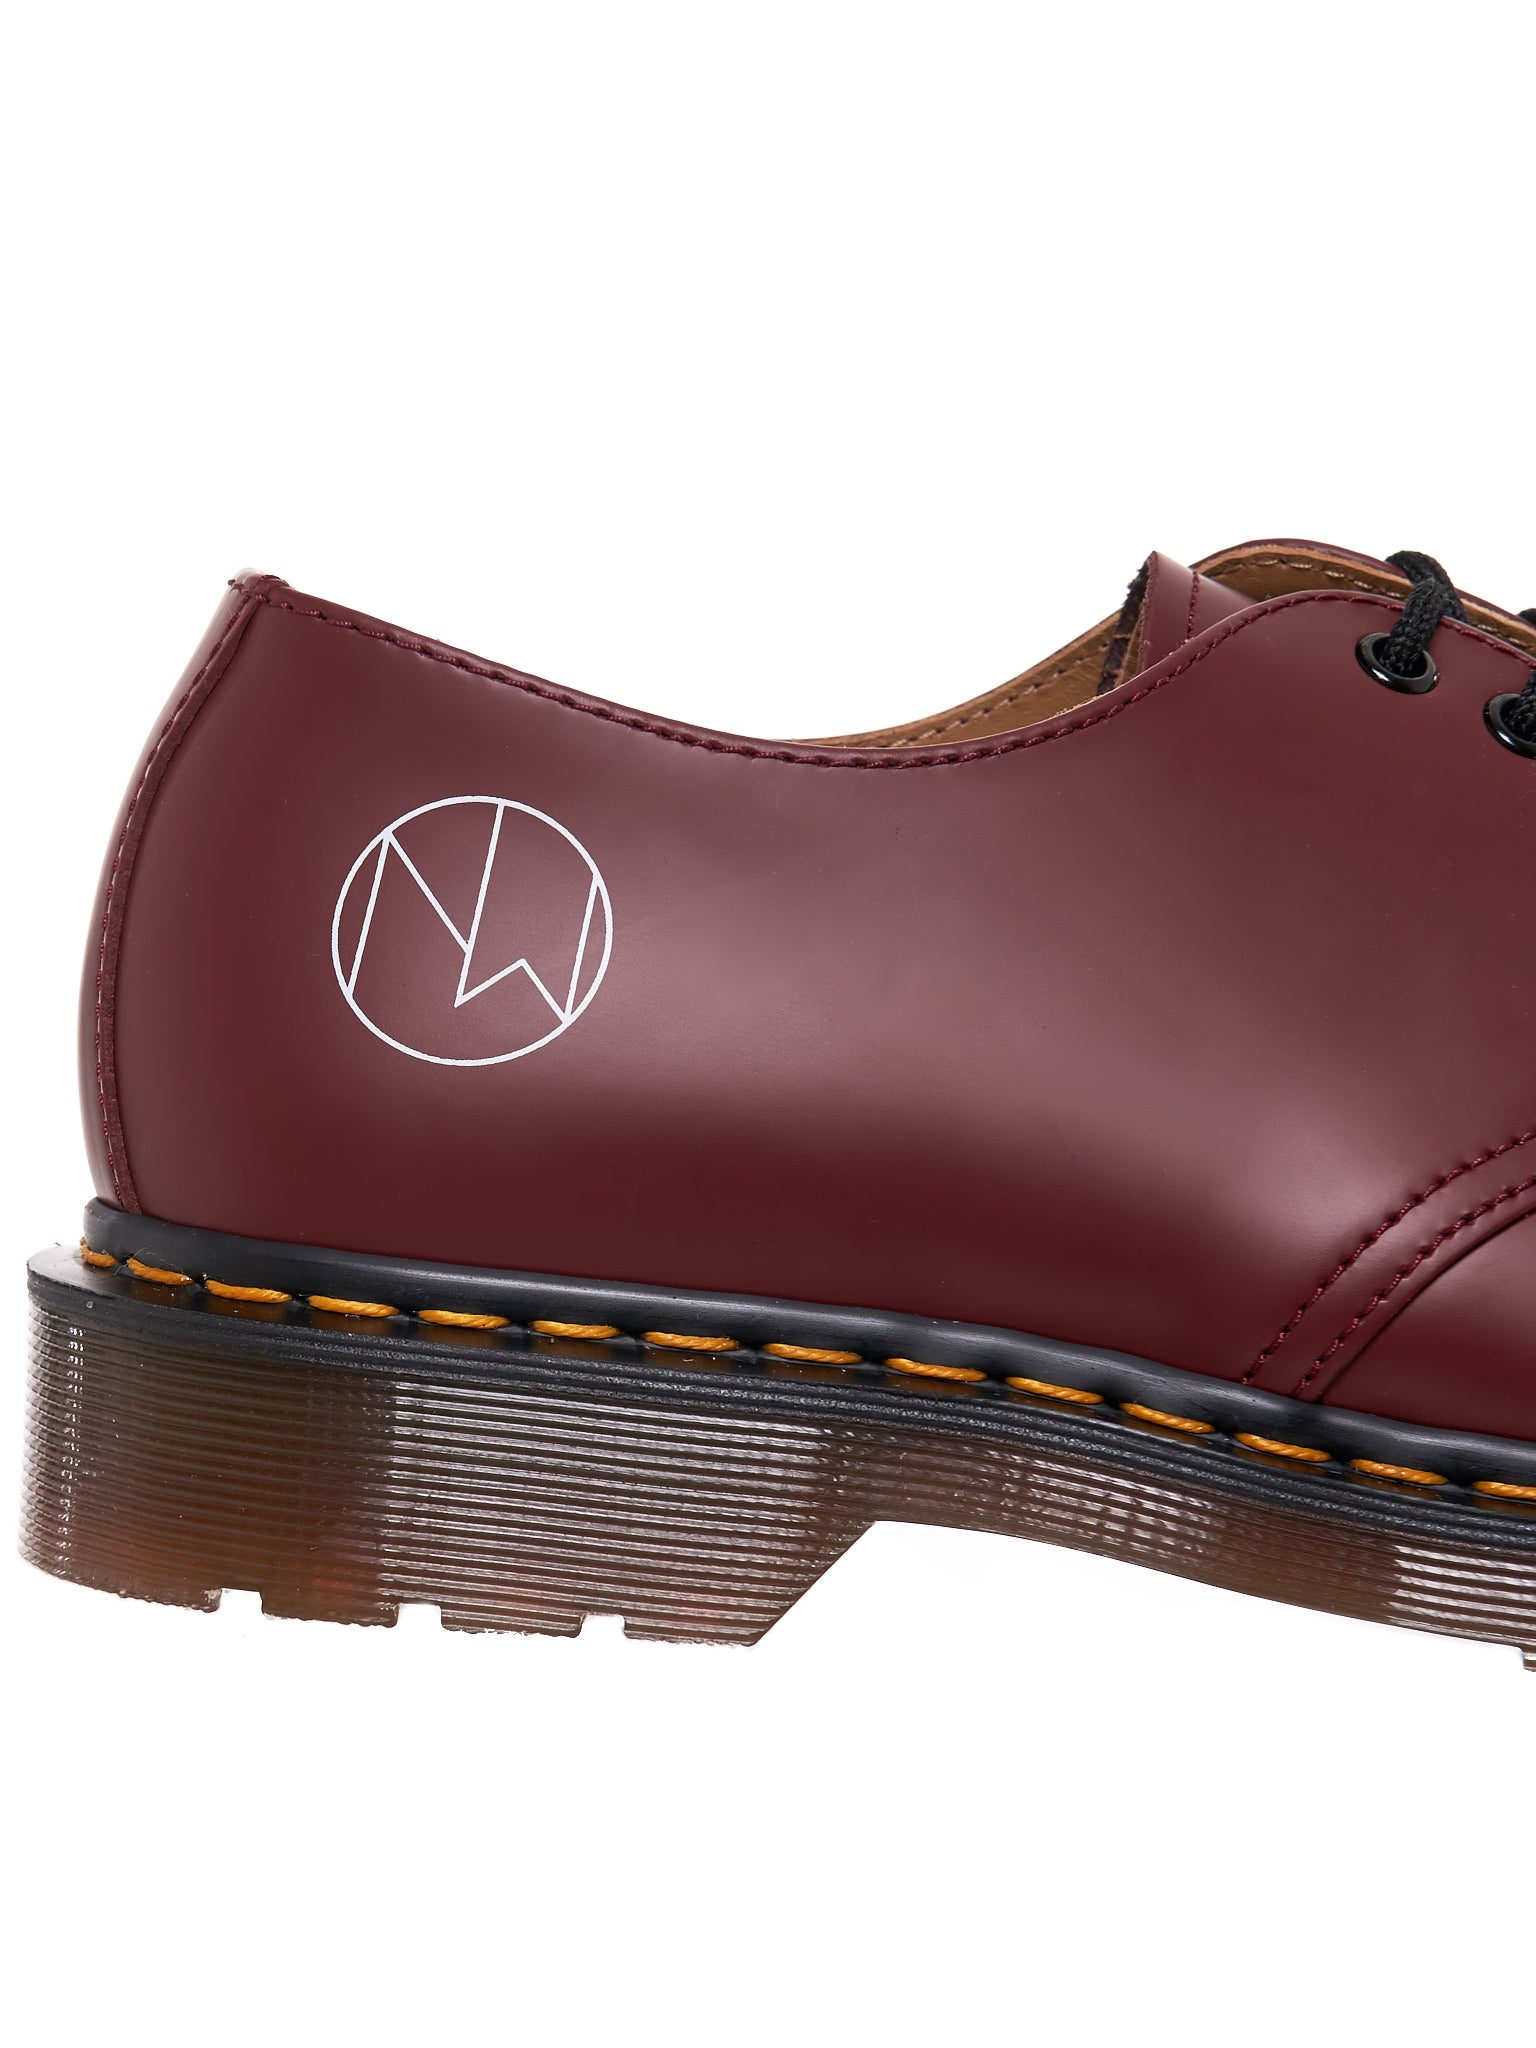 Undercover x Dr. Martens Derby - Hlorenzo Detail 2